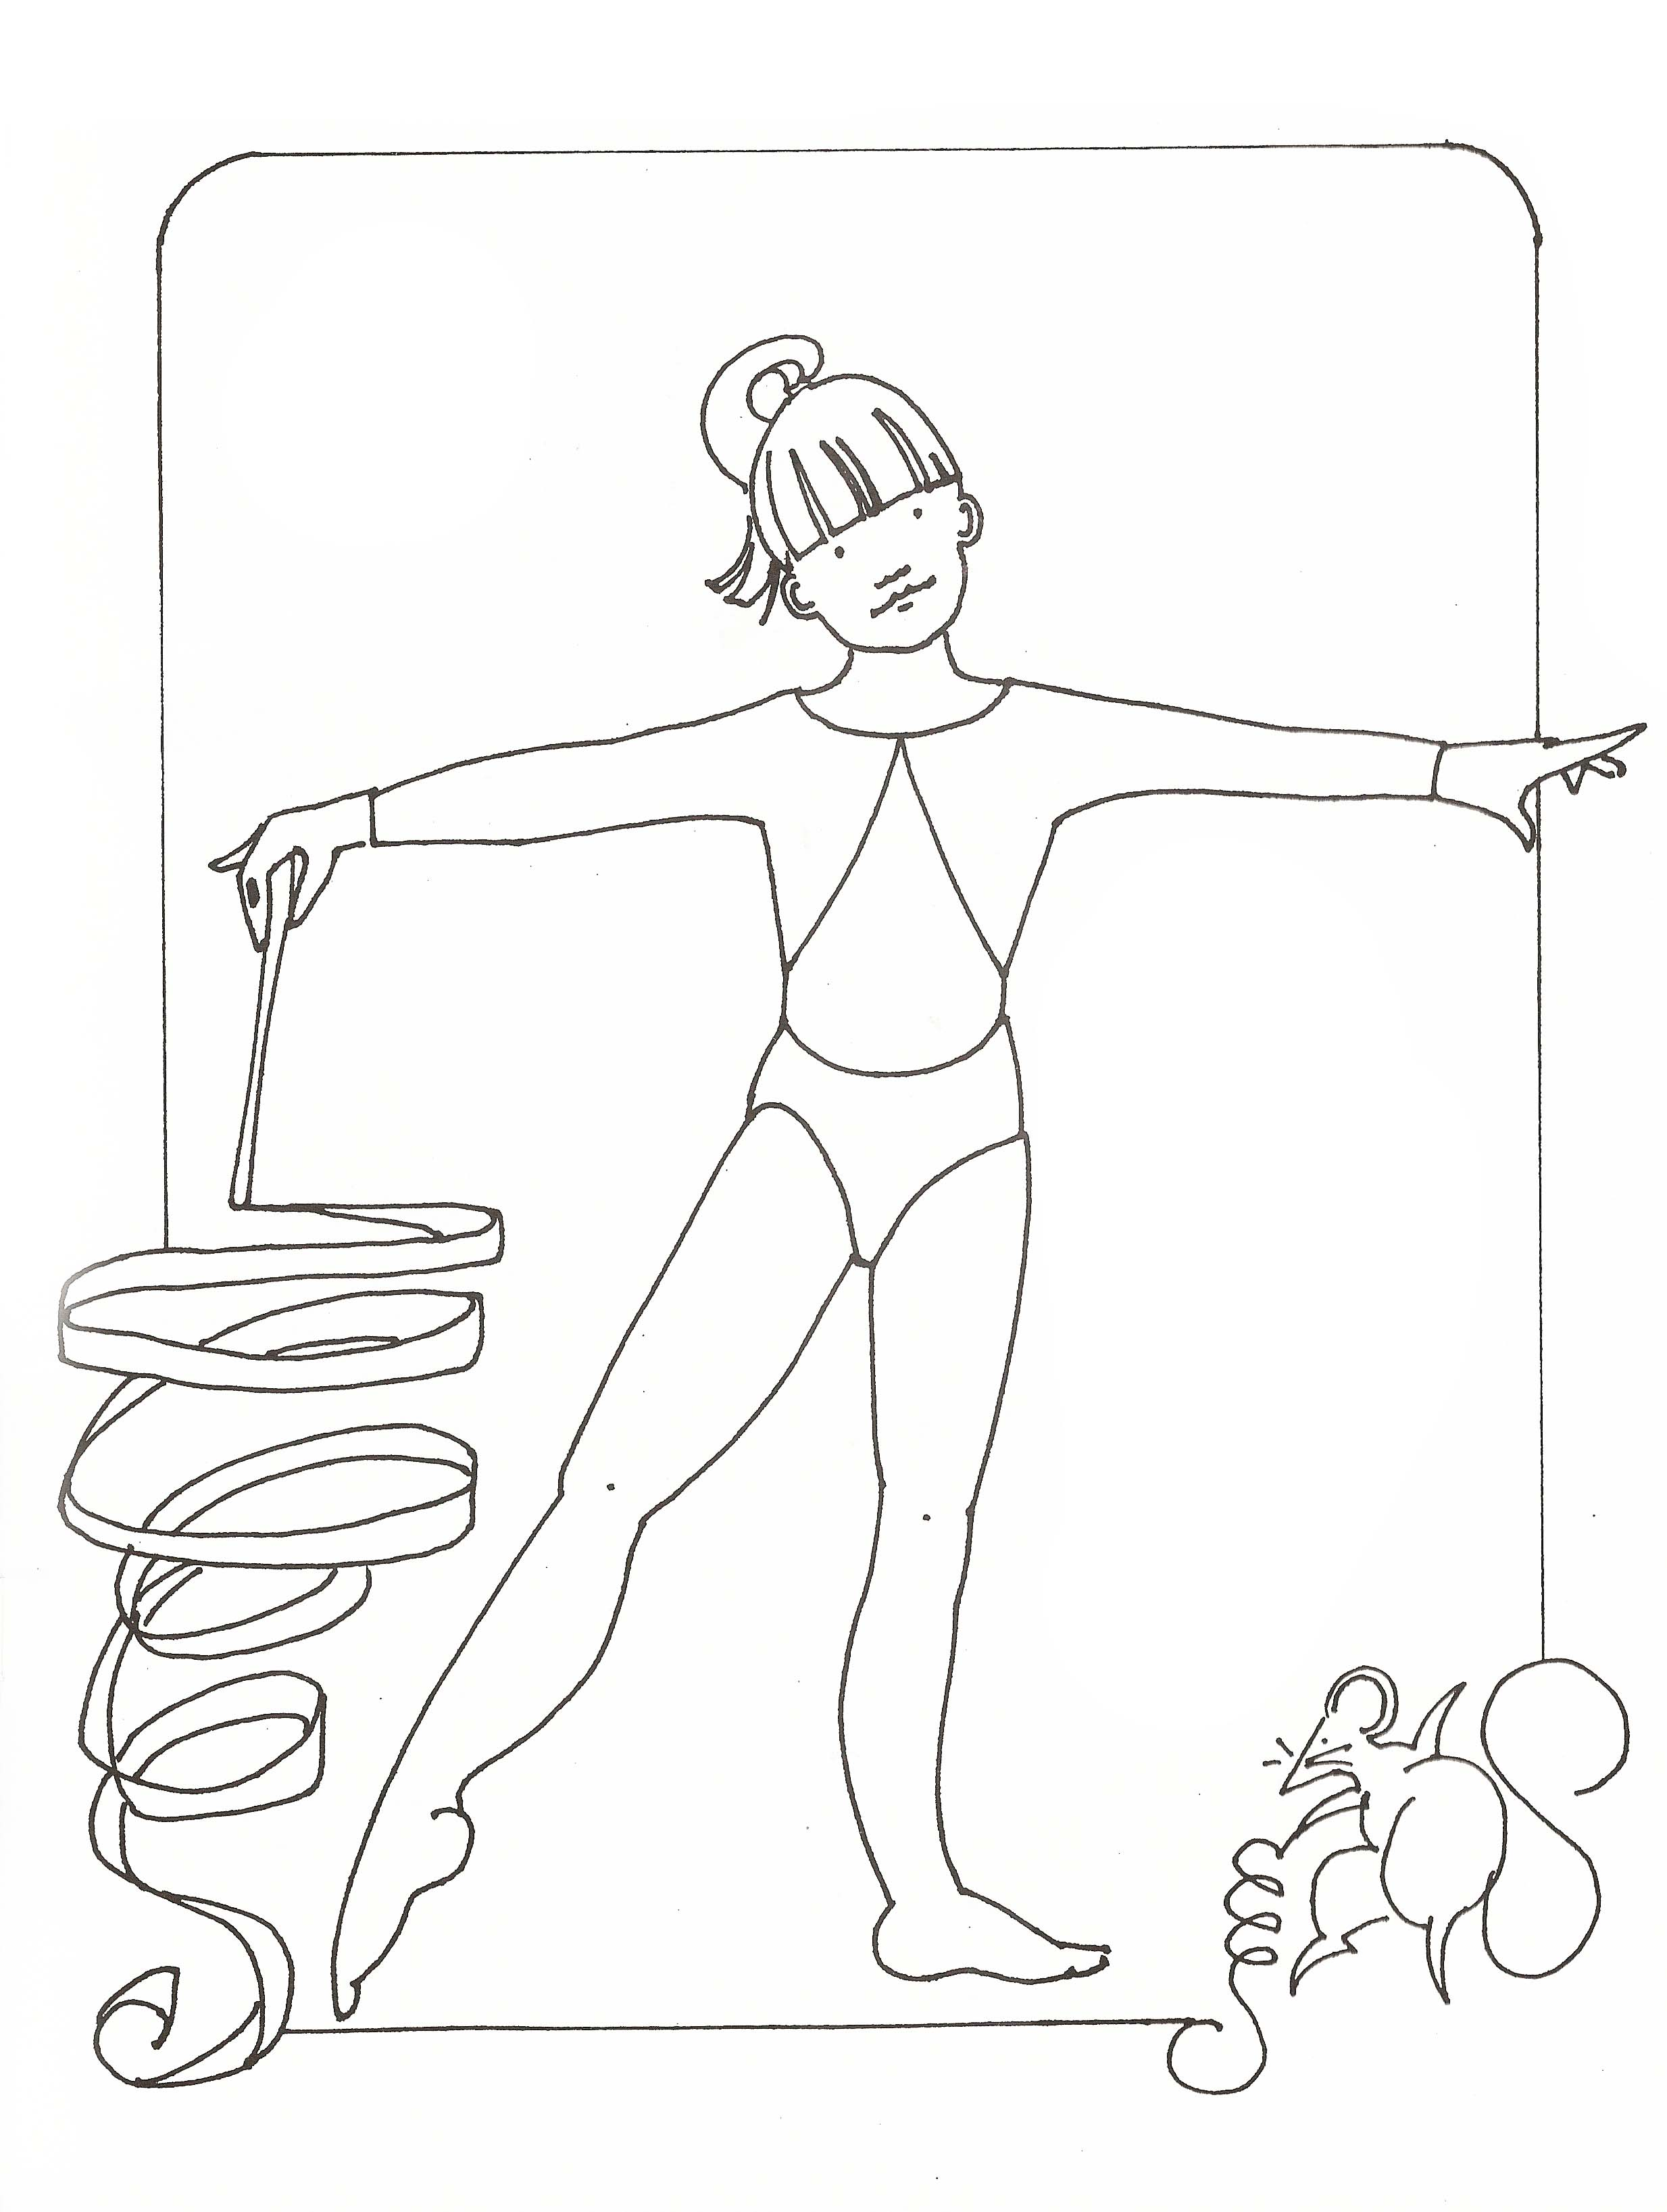 Barbie Gymnastics Coloring Pages : Coloring pages of gymnastics home